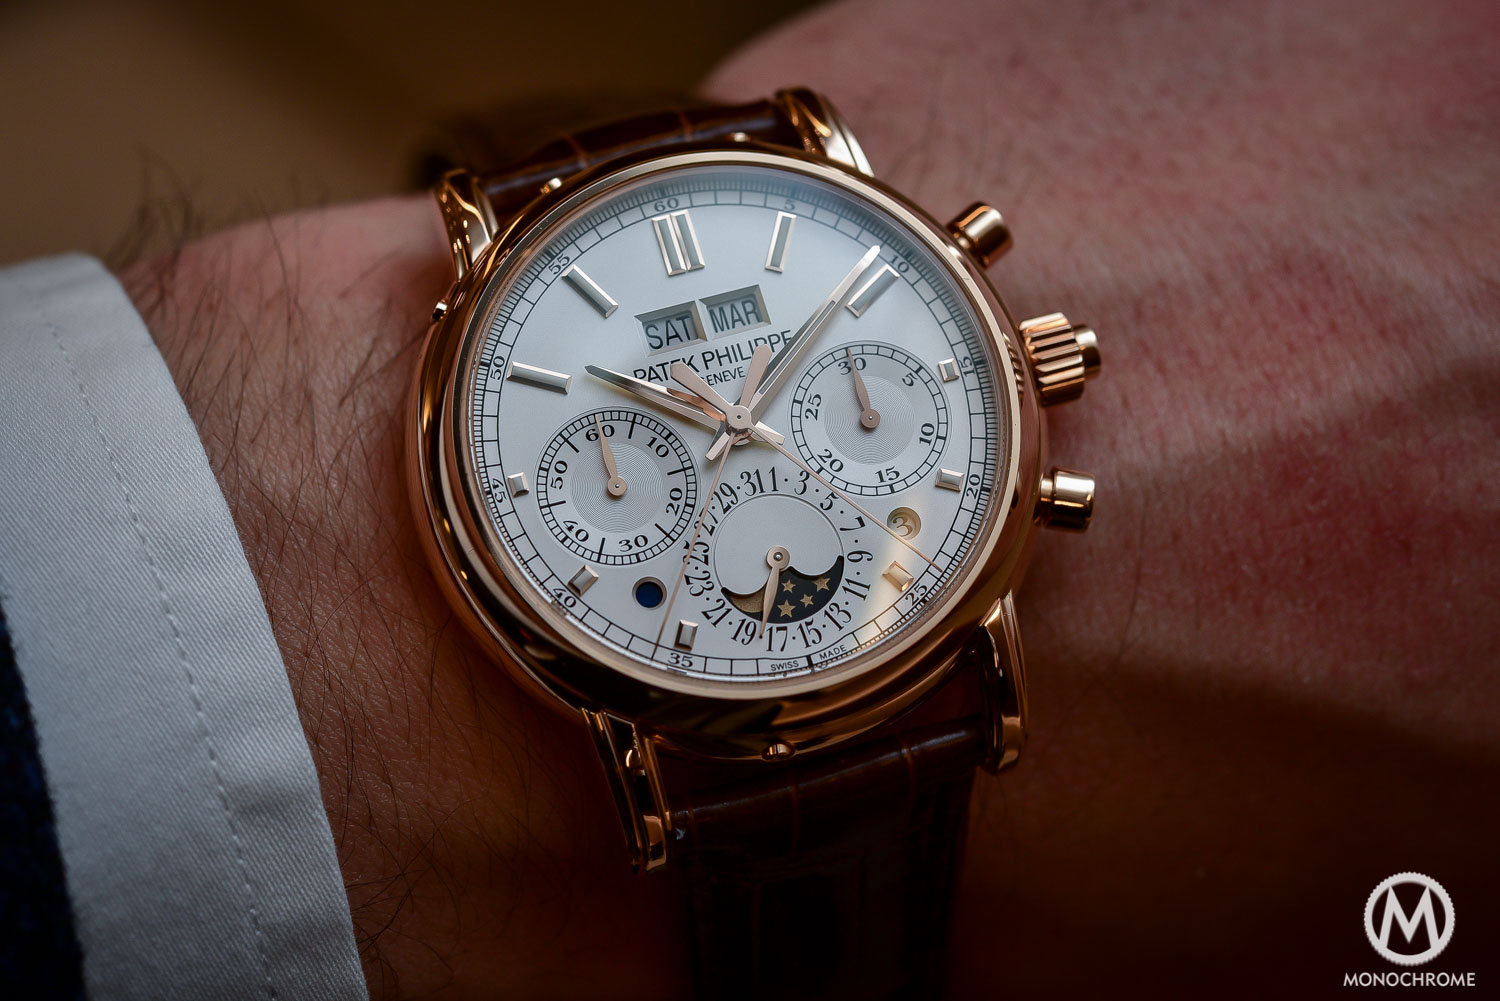 Patek Philippe 5204R Split-Seconds Chronograph Perpetual Calendar - Baselworld 2016 - 1